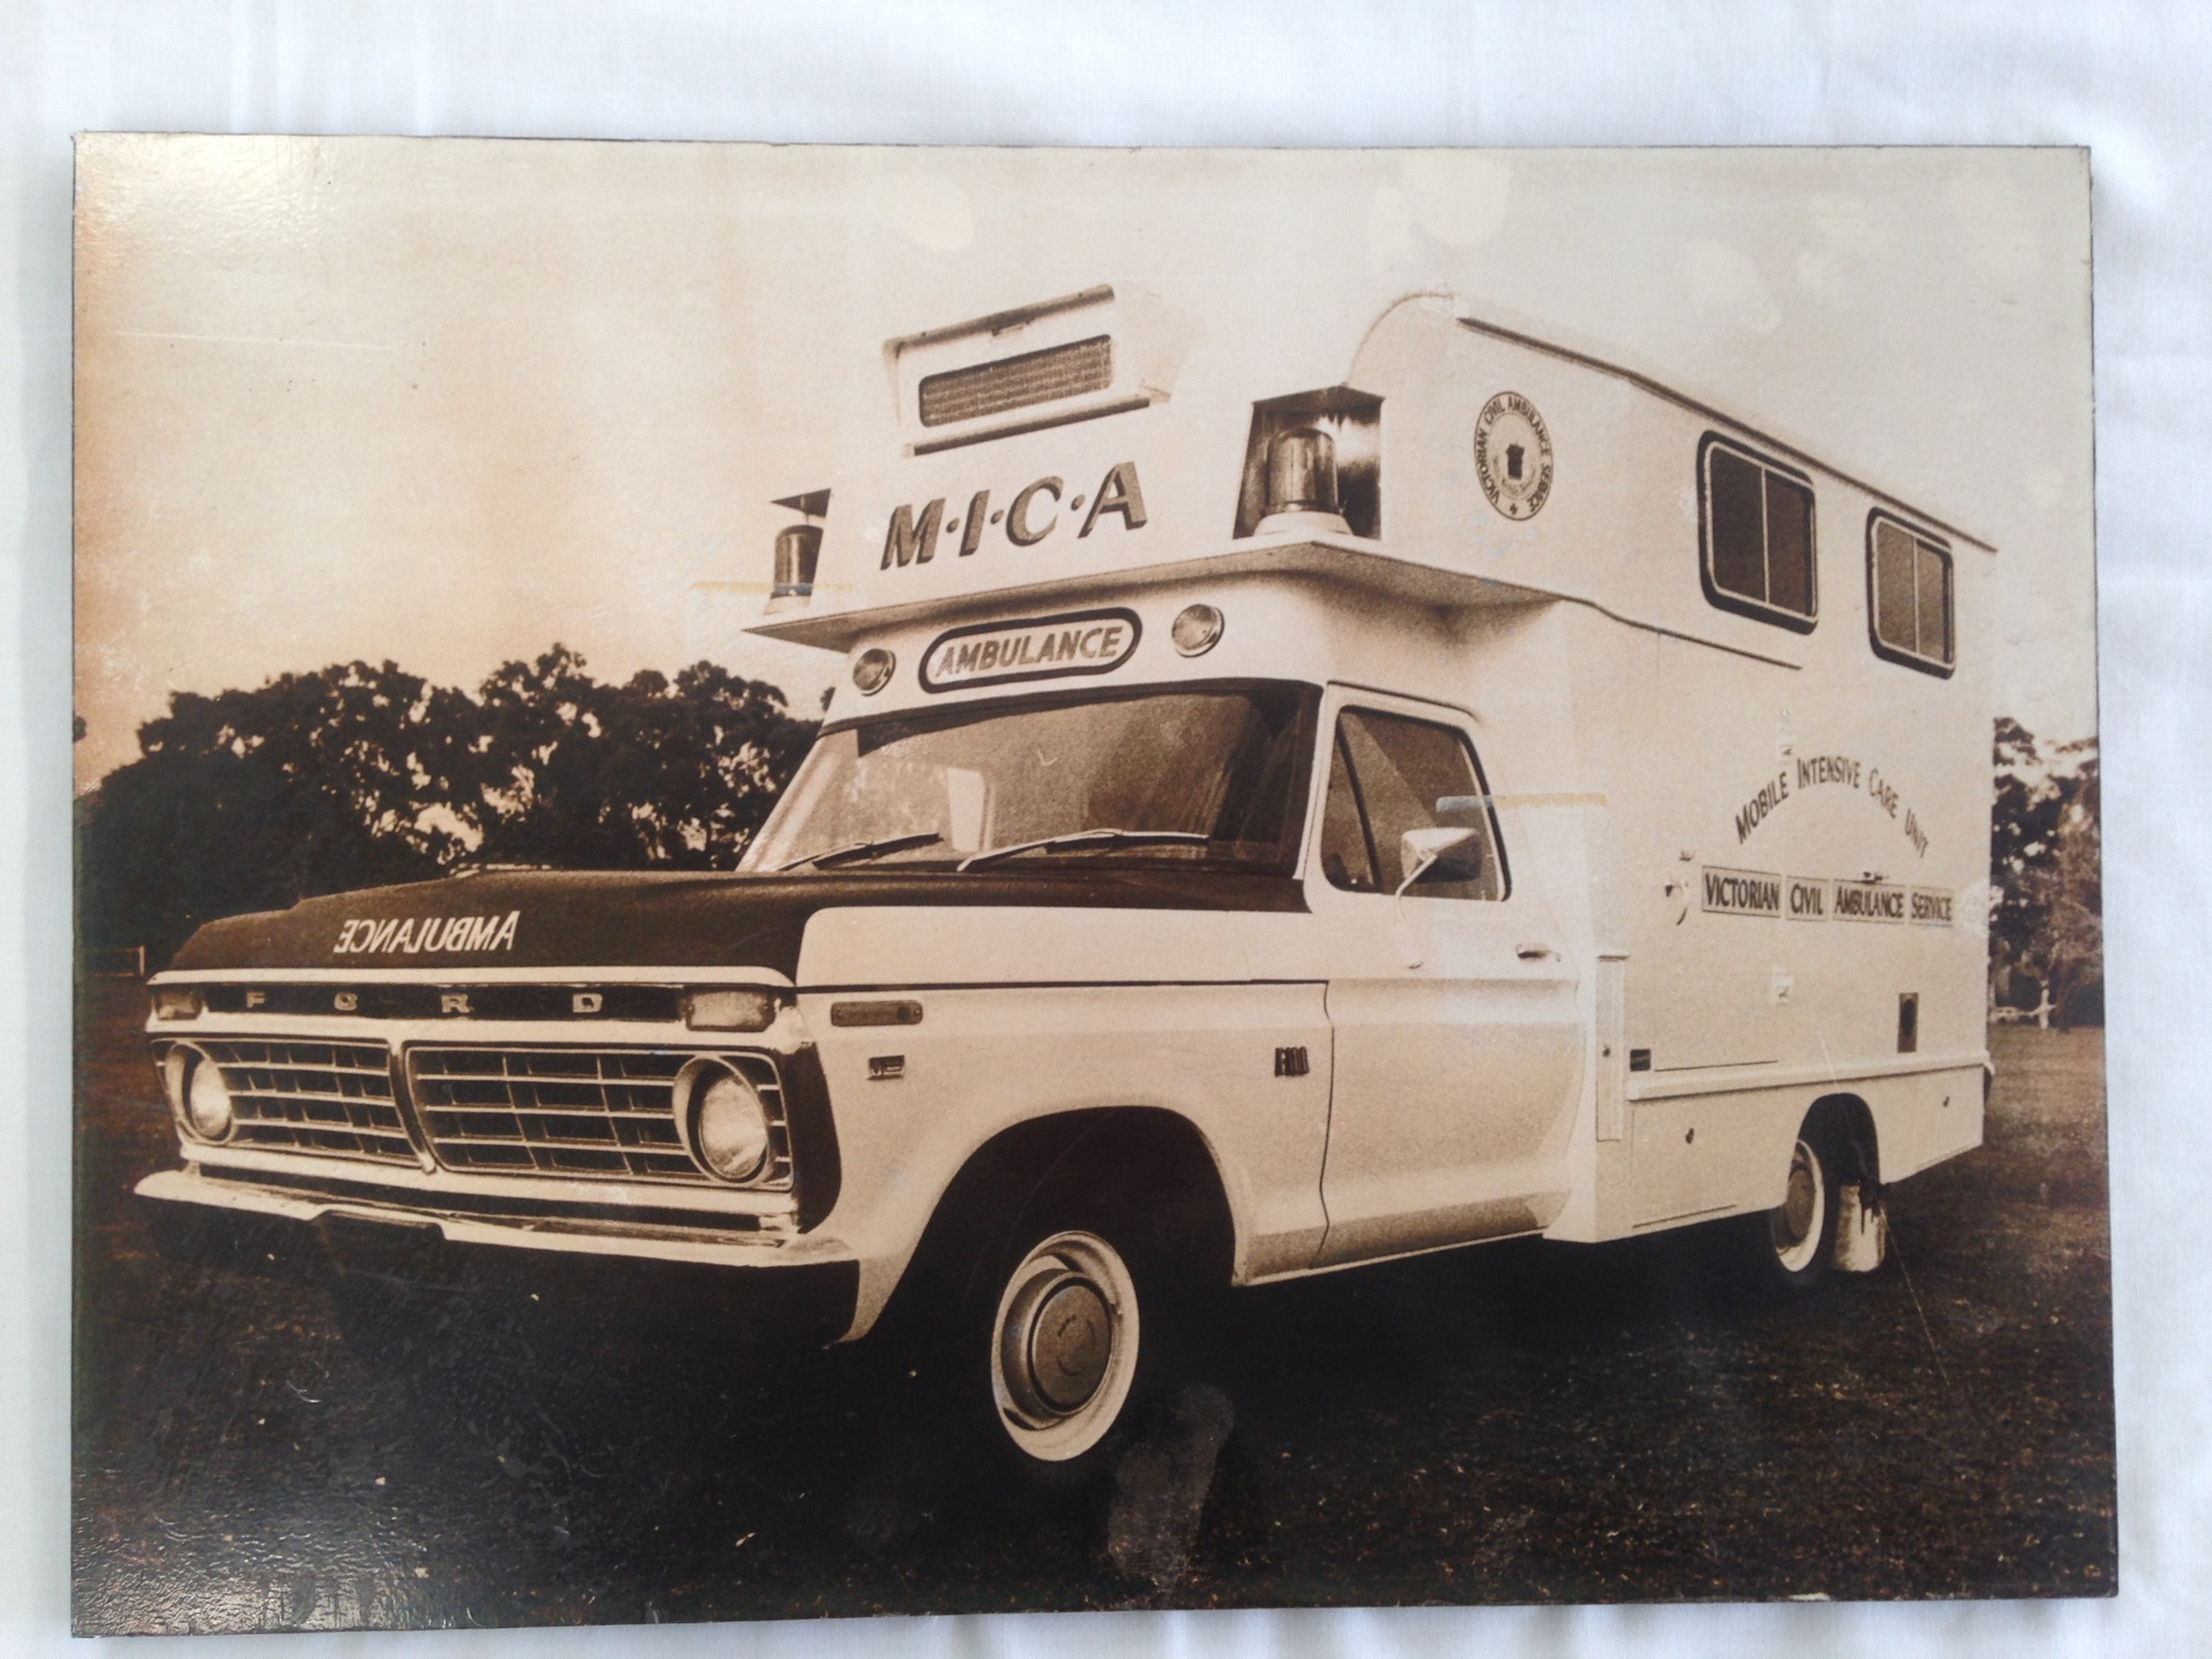 This first MICA ambulance was a retrofitted clinic transport bus in 1971. Mobile Intensive Care Ambulances in Victoria were initiated after the advantage of mobile coronary care units was recognised and a recommendation that ambulance officers receive advanced medical training was accepted.